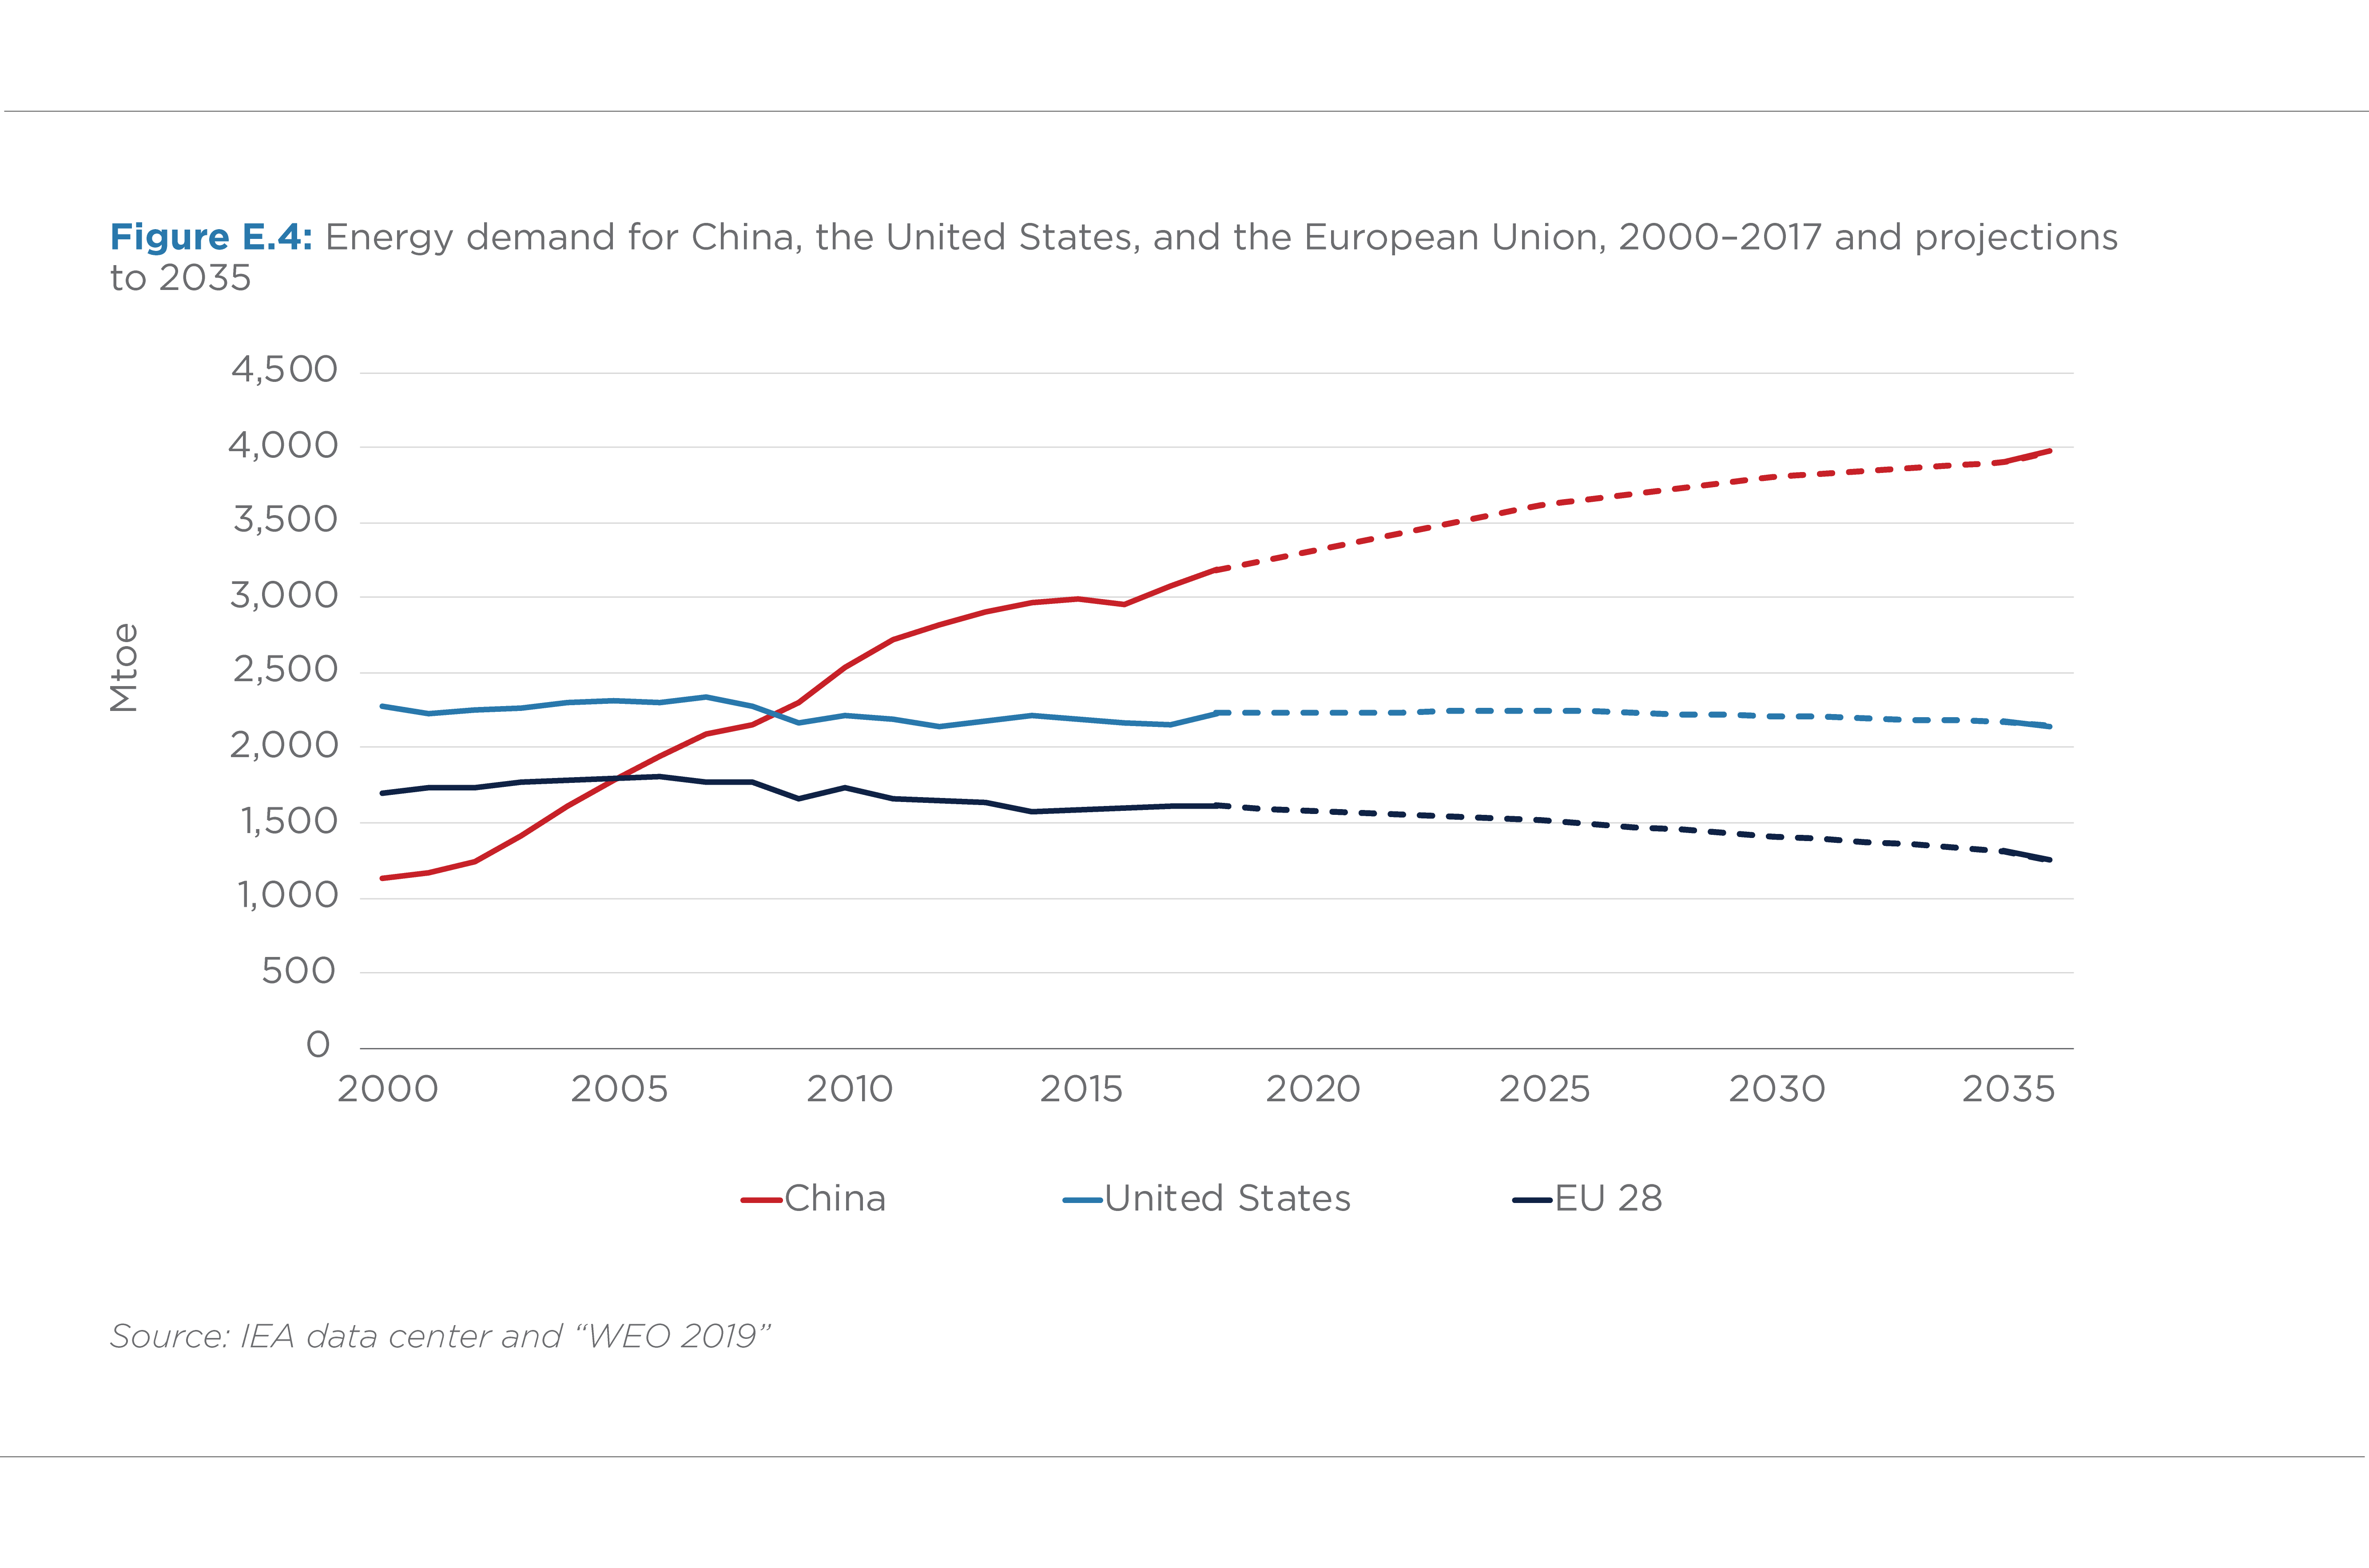 FIGURE E.4. ENERGY DEMAND FOR CHINA, THE UNITED STATES, AND THE EUROPEAN UNION (2000–2017 AND PROJECTIONS TO 2035)